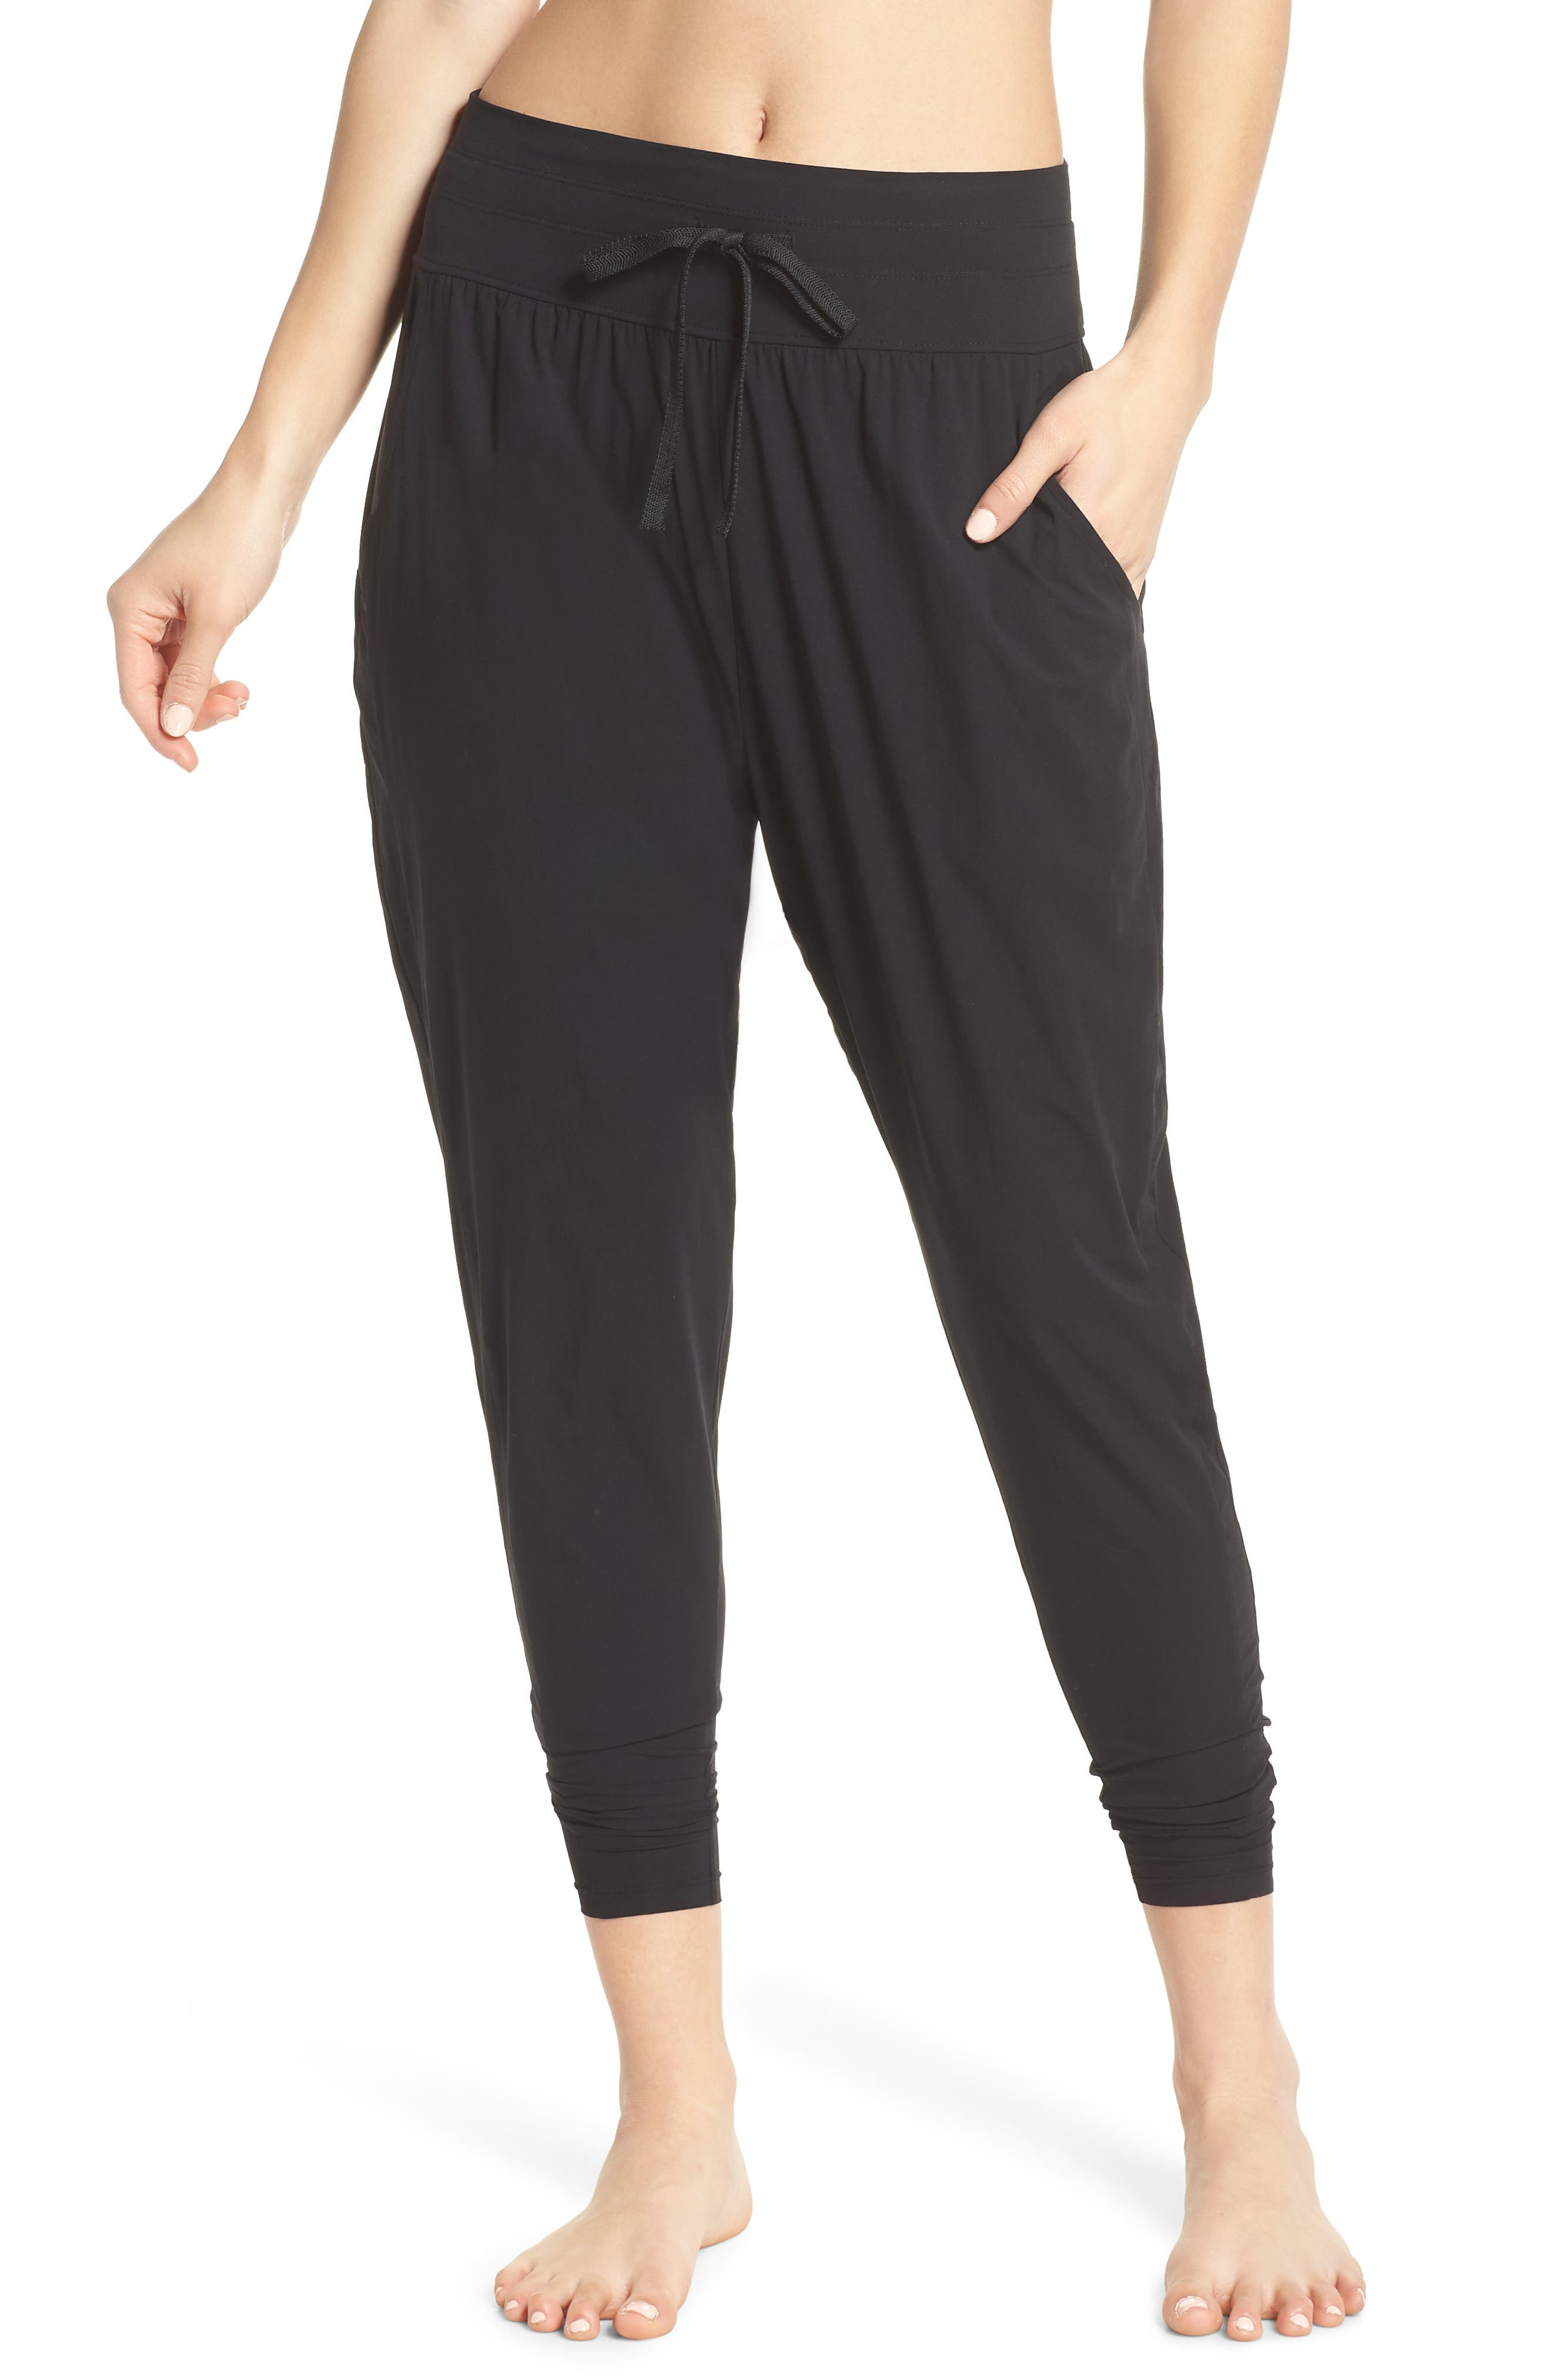 FREE PEOPLE MOVEMENT Cardio Harem Pants, Main, color, 001